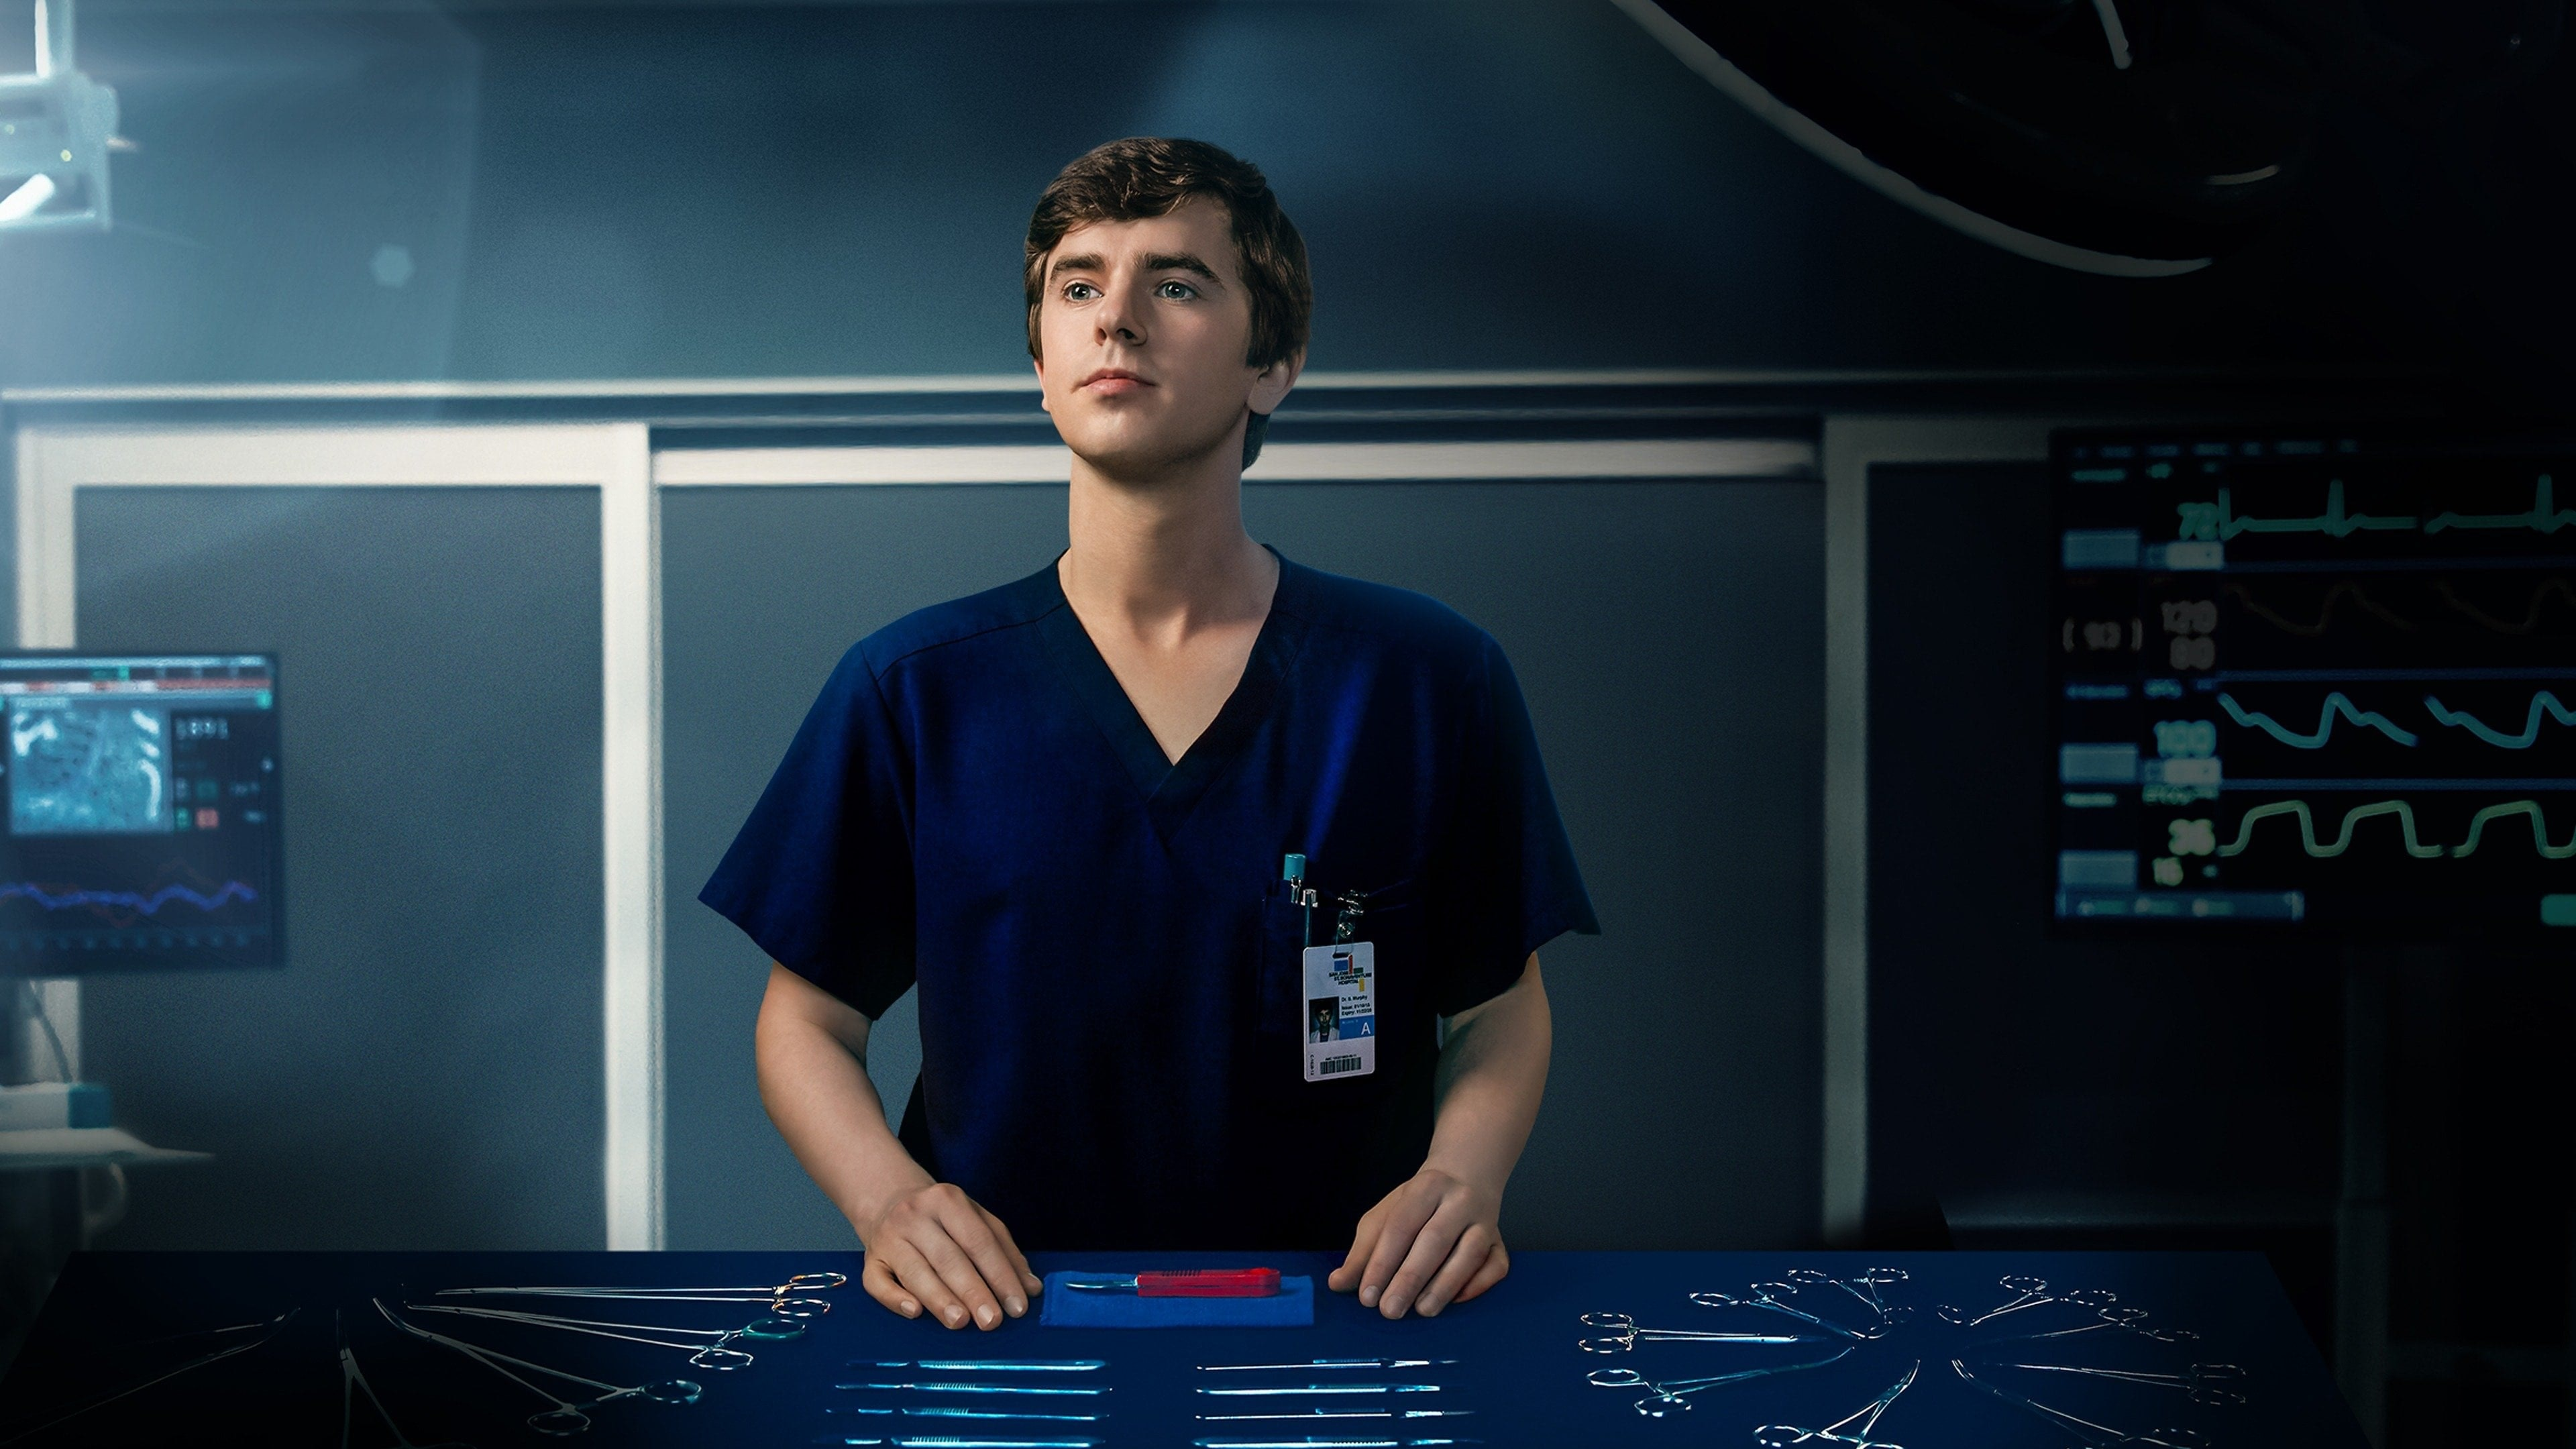 The Good Doctor Soundtrack